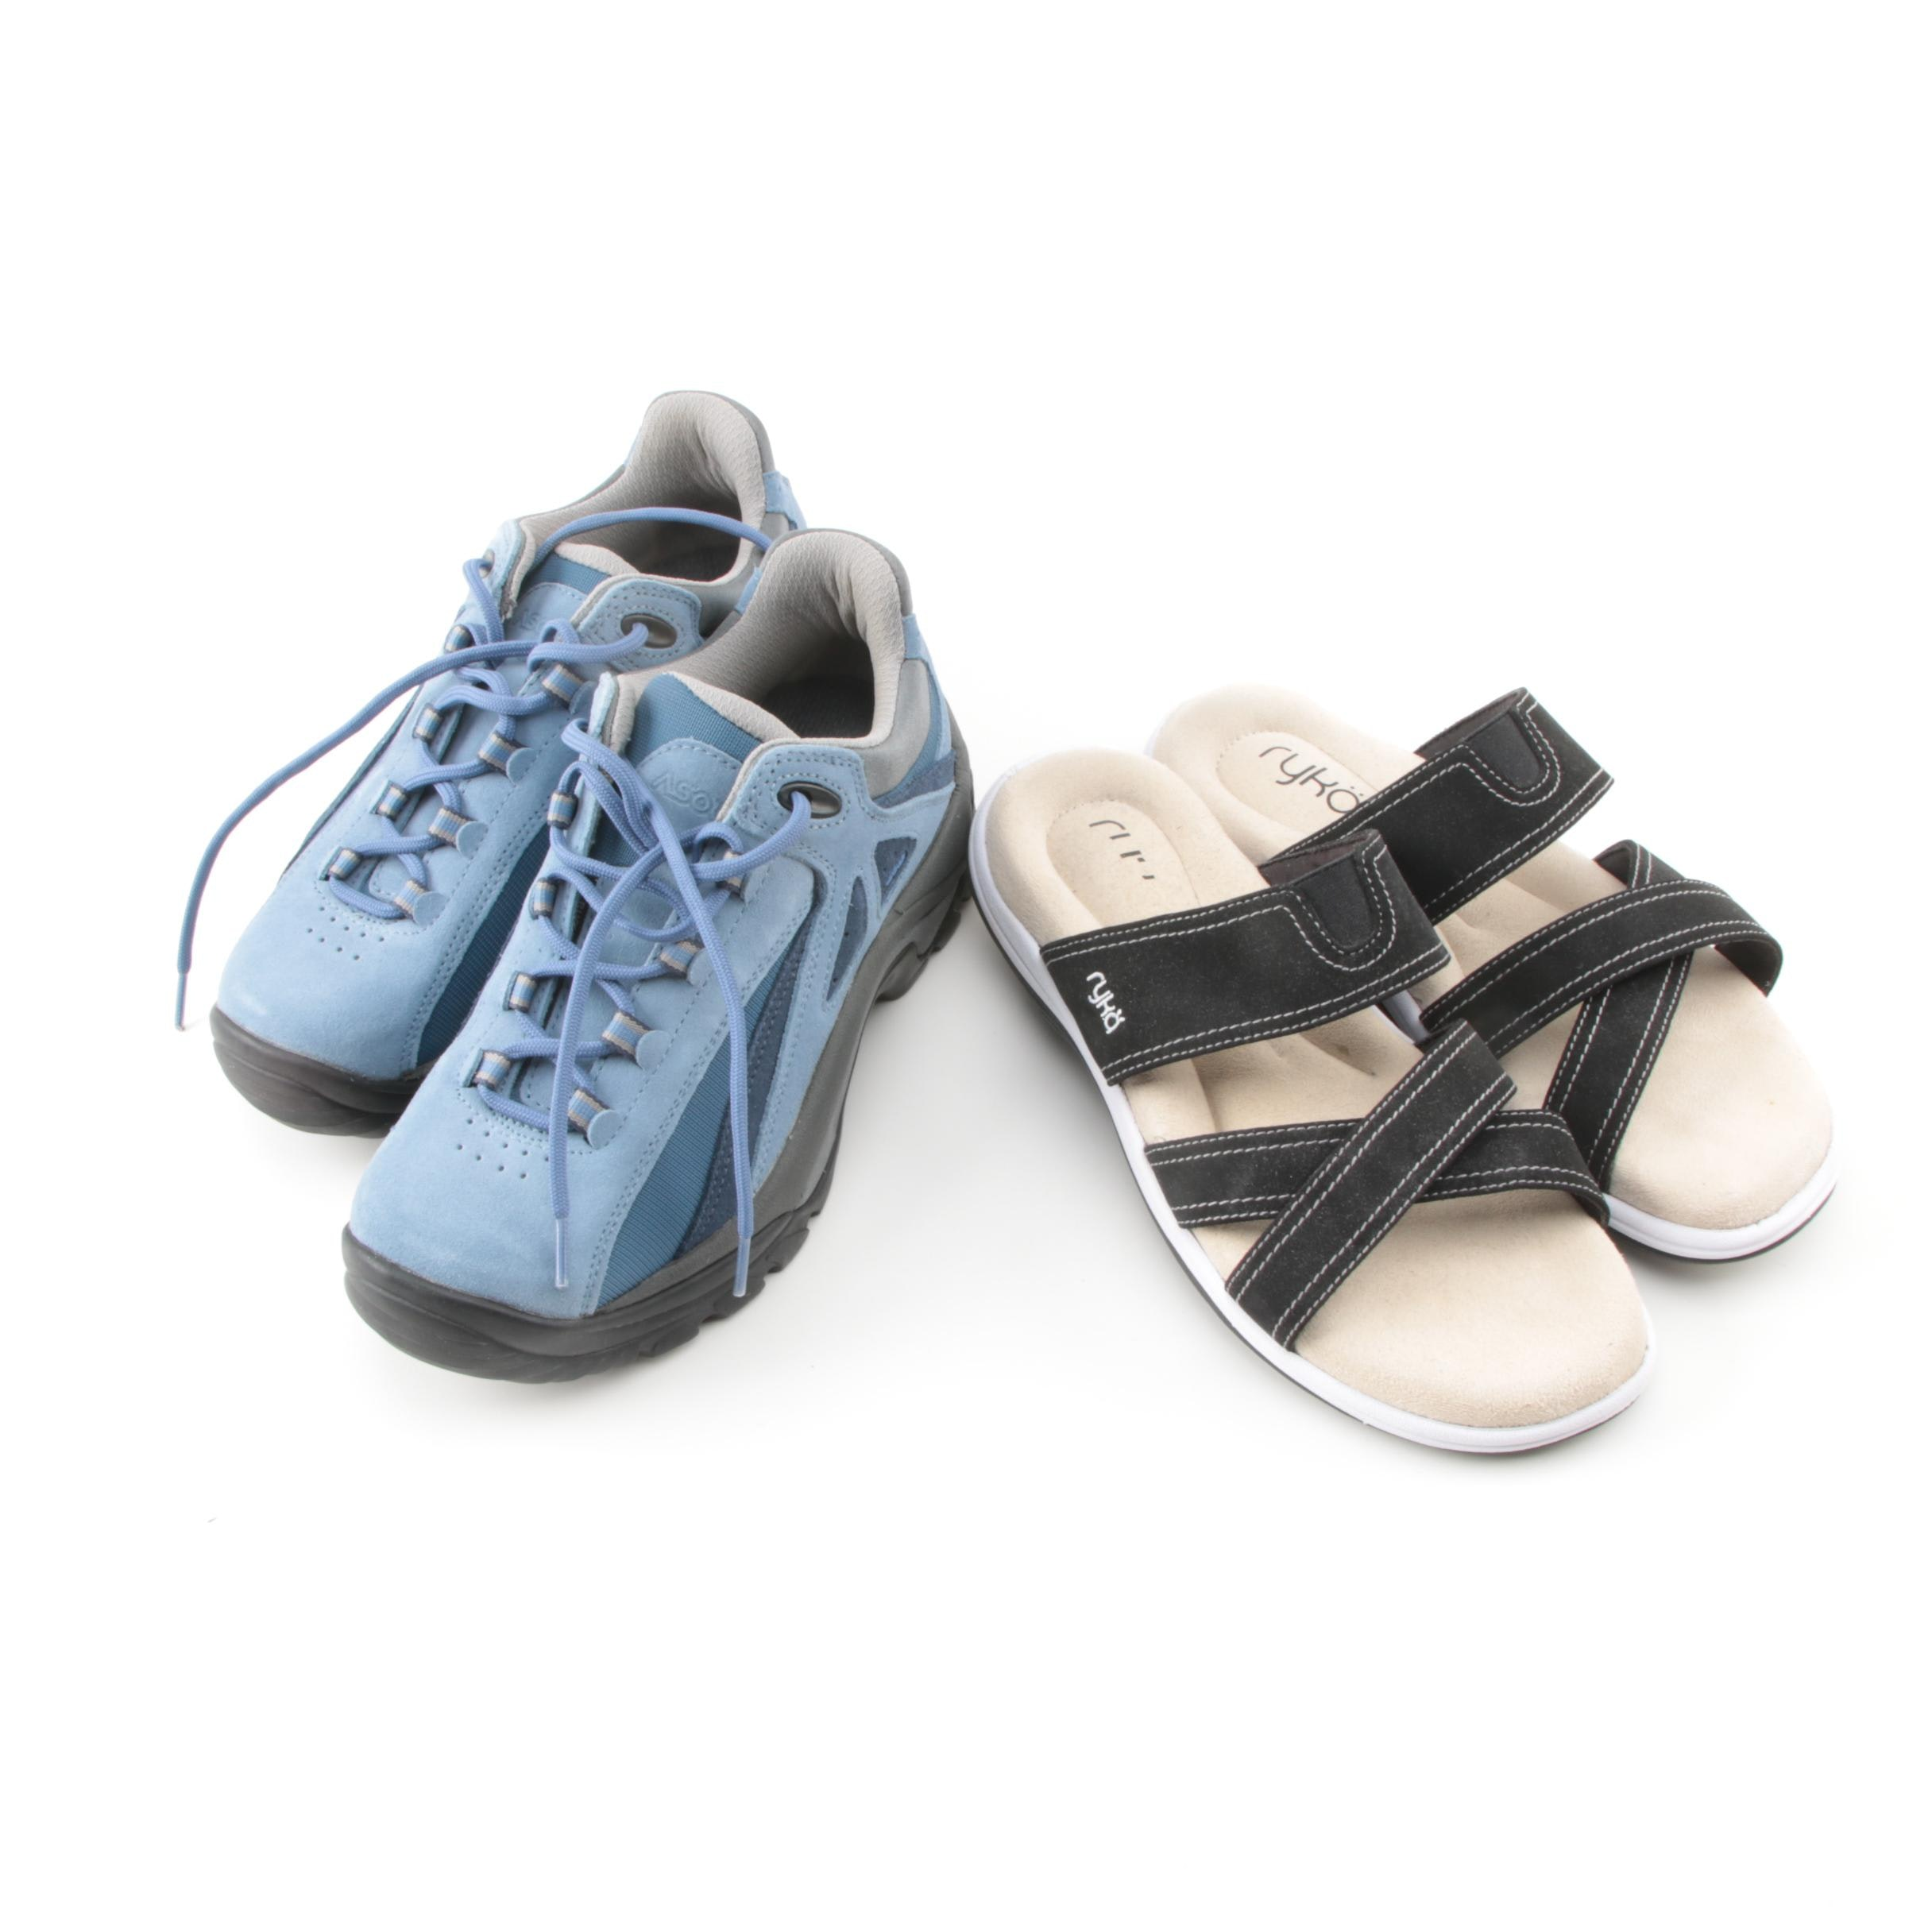 Women's Asolo Hiking Shoes and Ryko Black Sandals